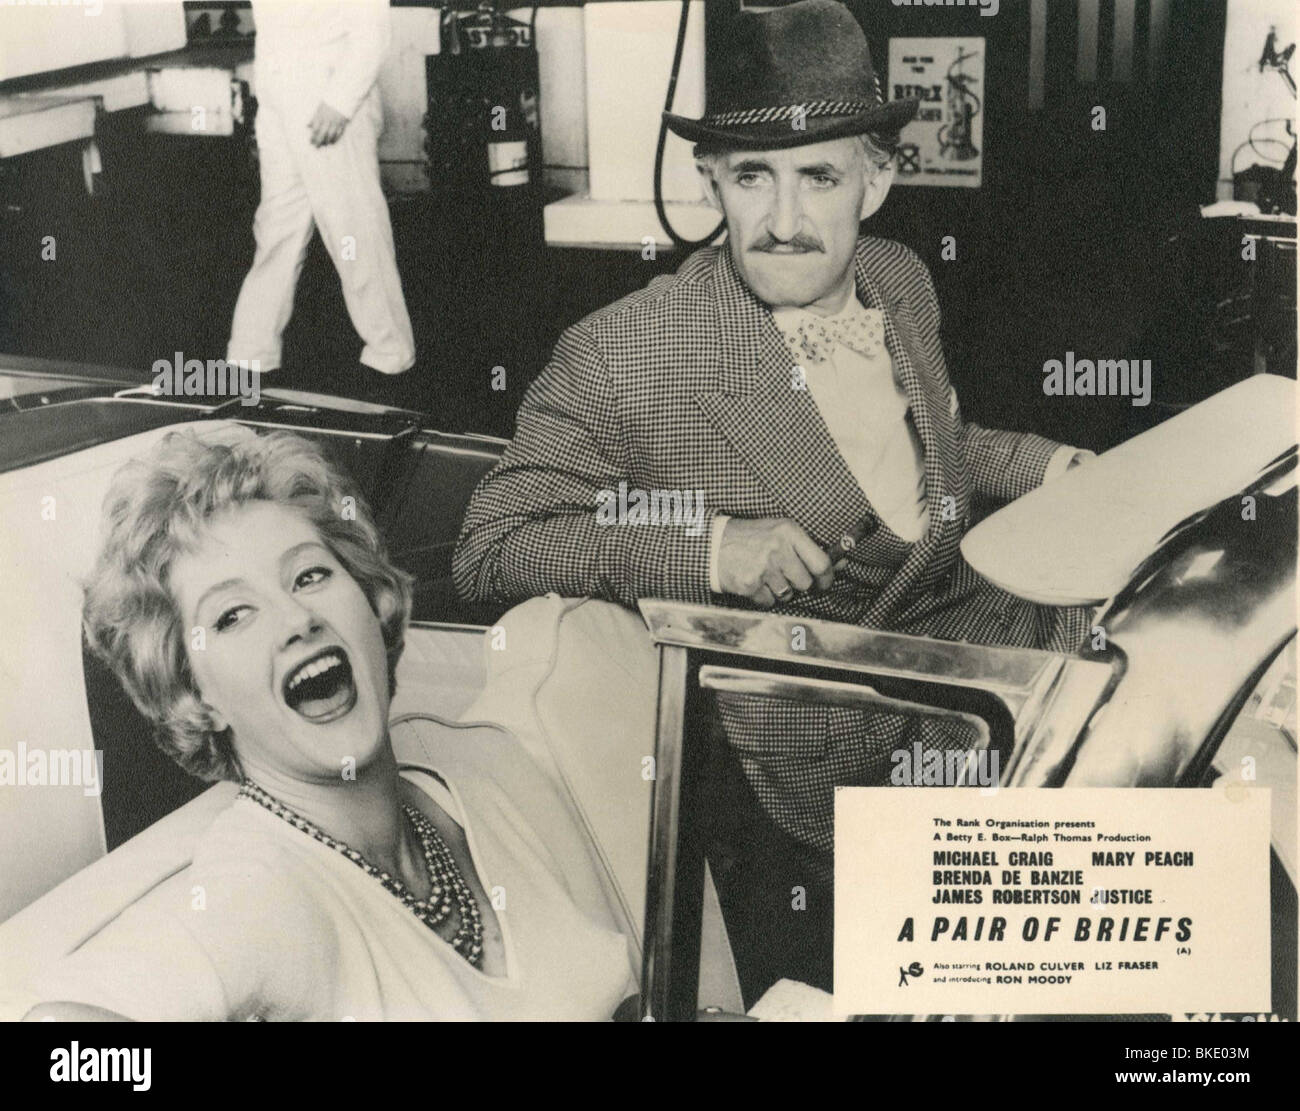 A PAIR OF BRIEFS (1961) LIZ FRASER, RON MOODY PRBR 002P - Stock Image